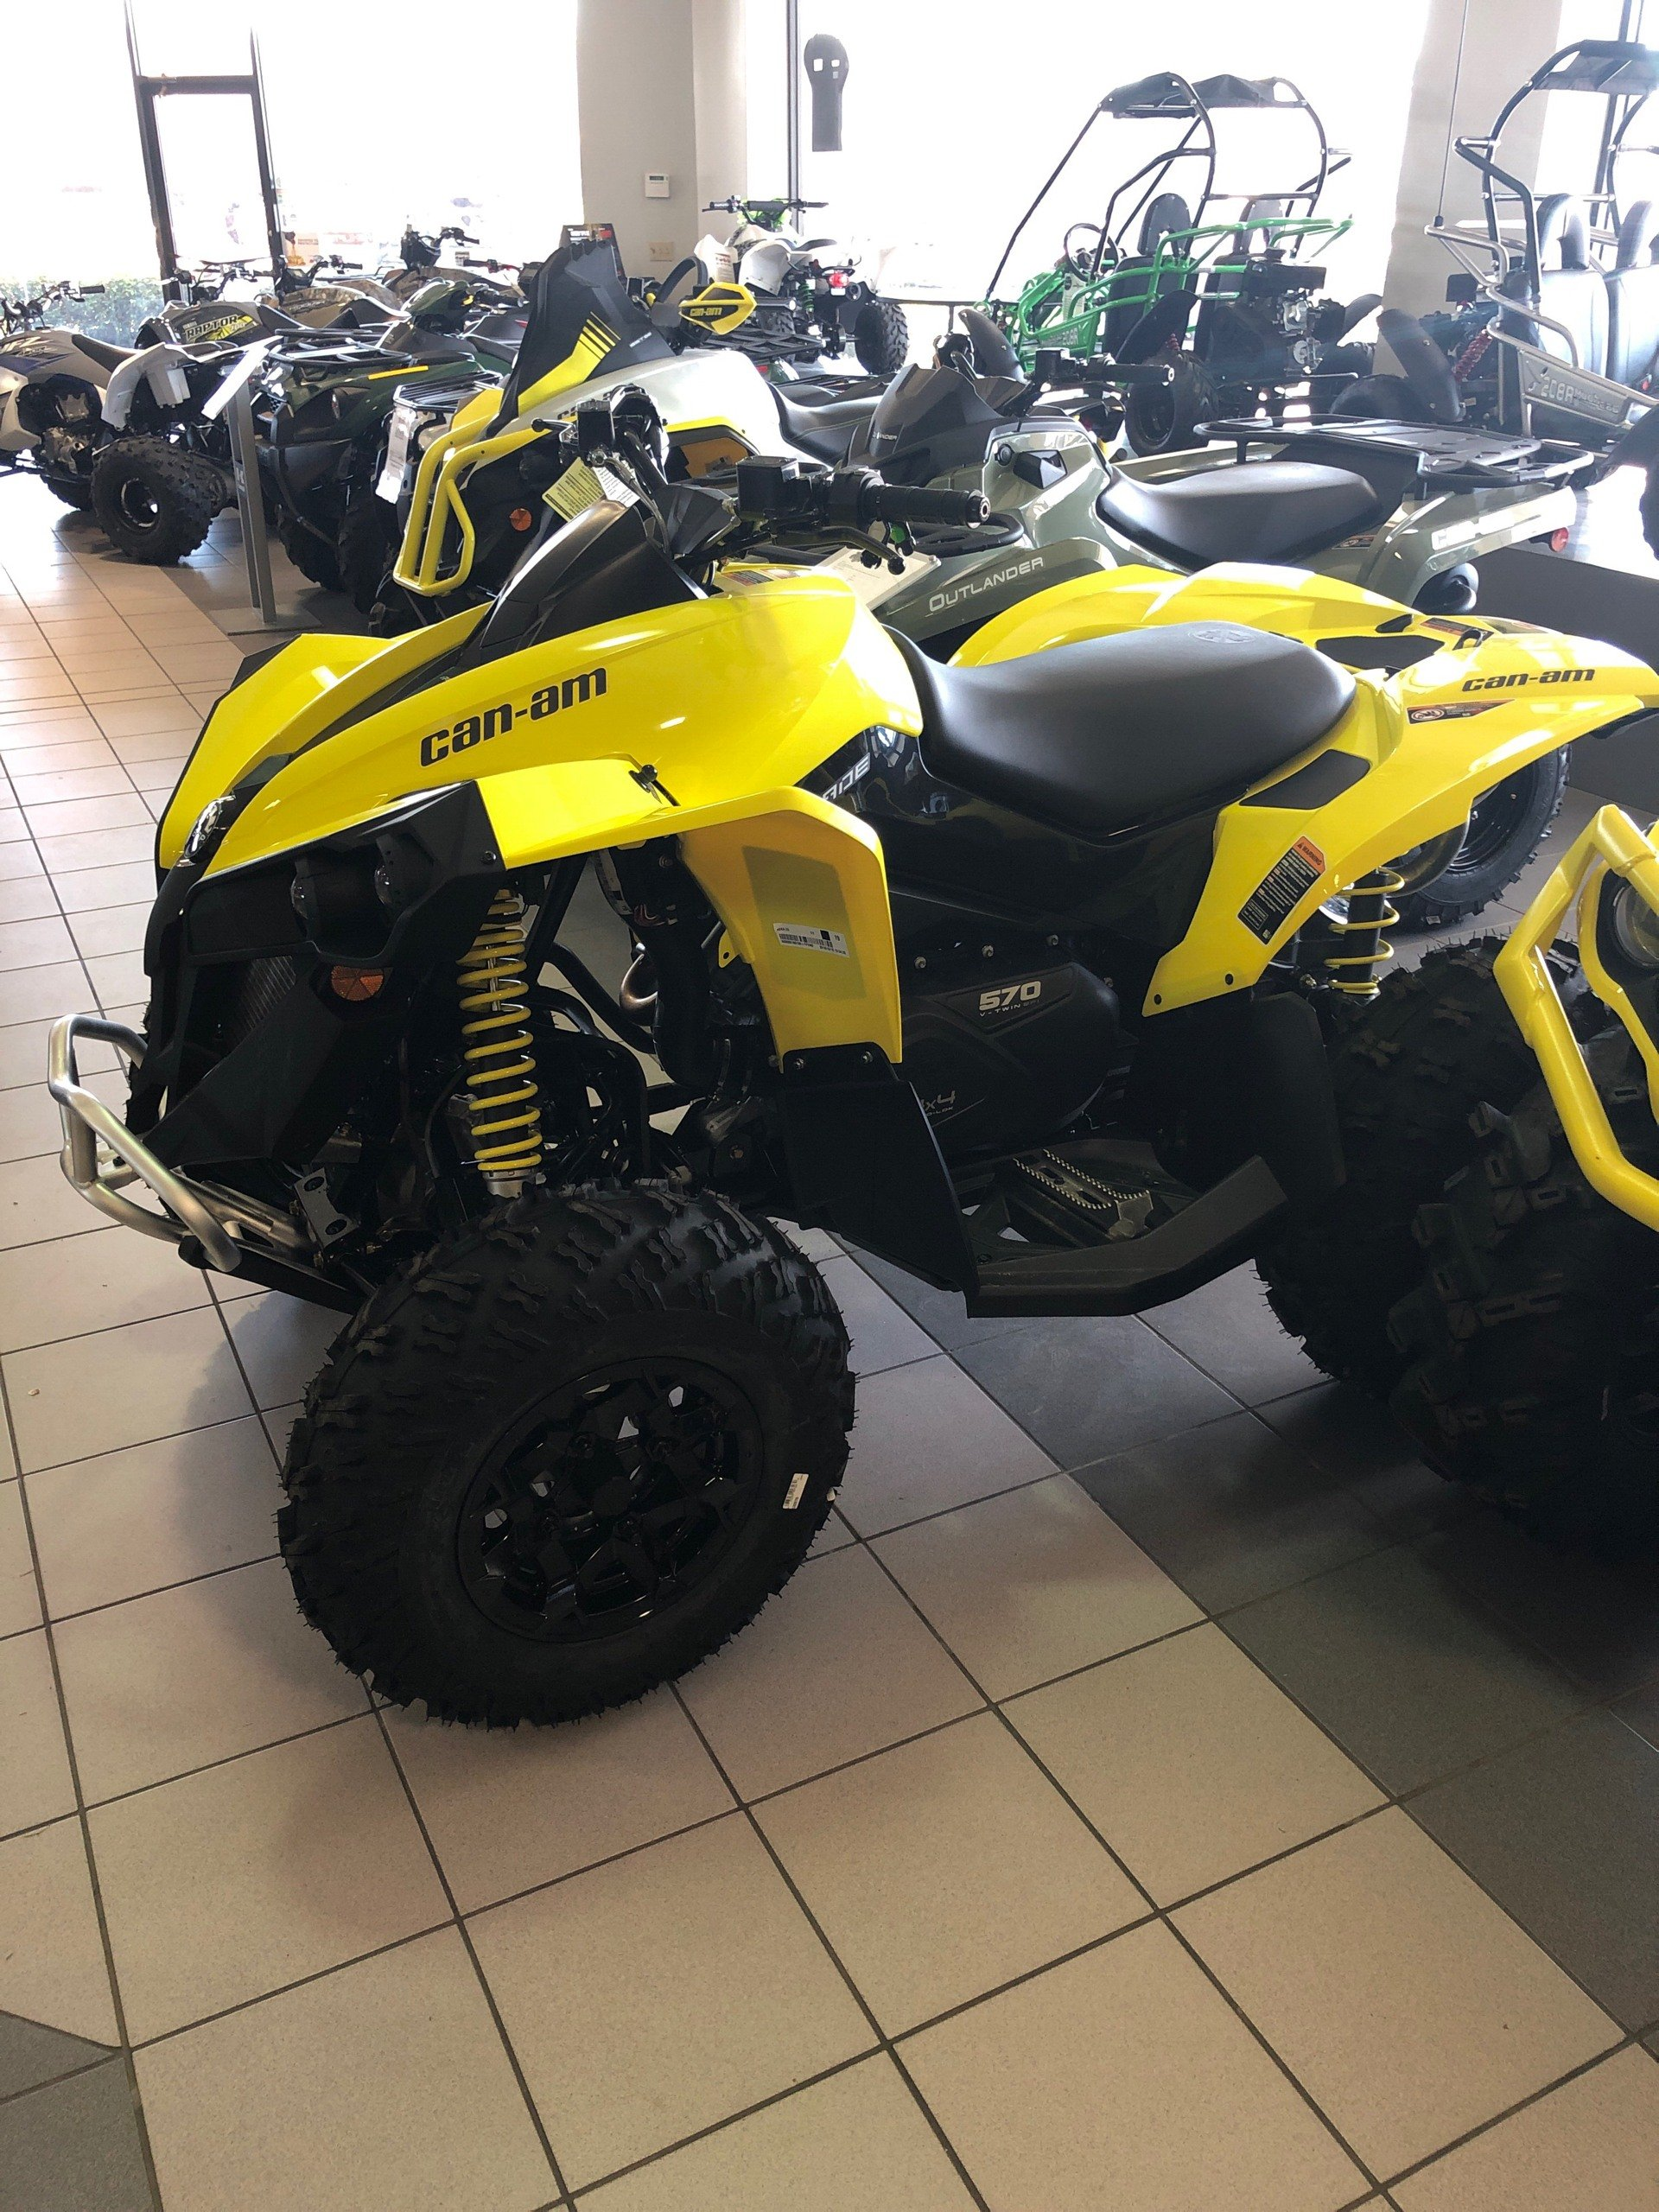 2019 Can-Am Renegade 570 in Lafayette, Louisiana - Photo 1